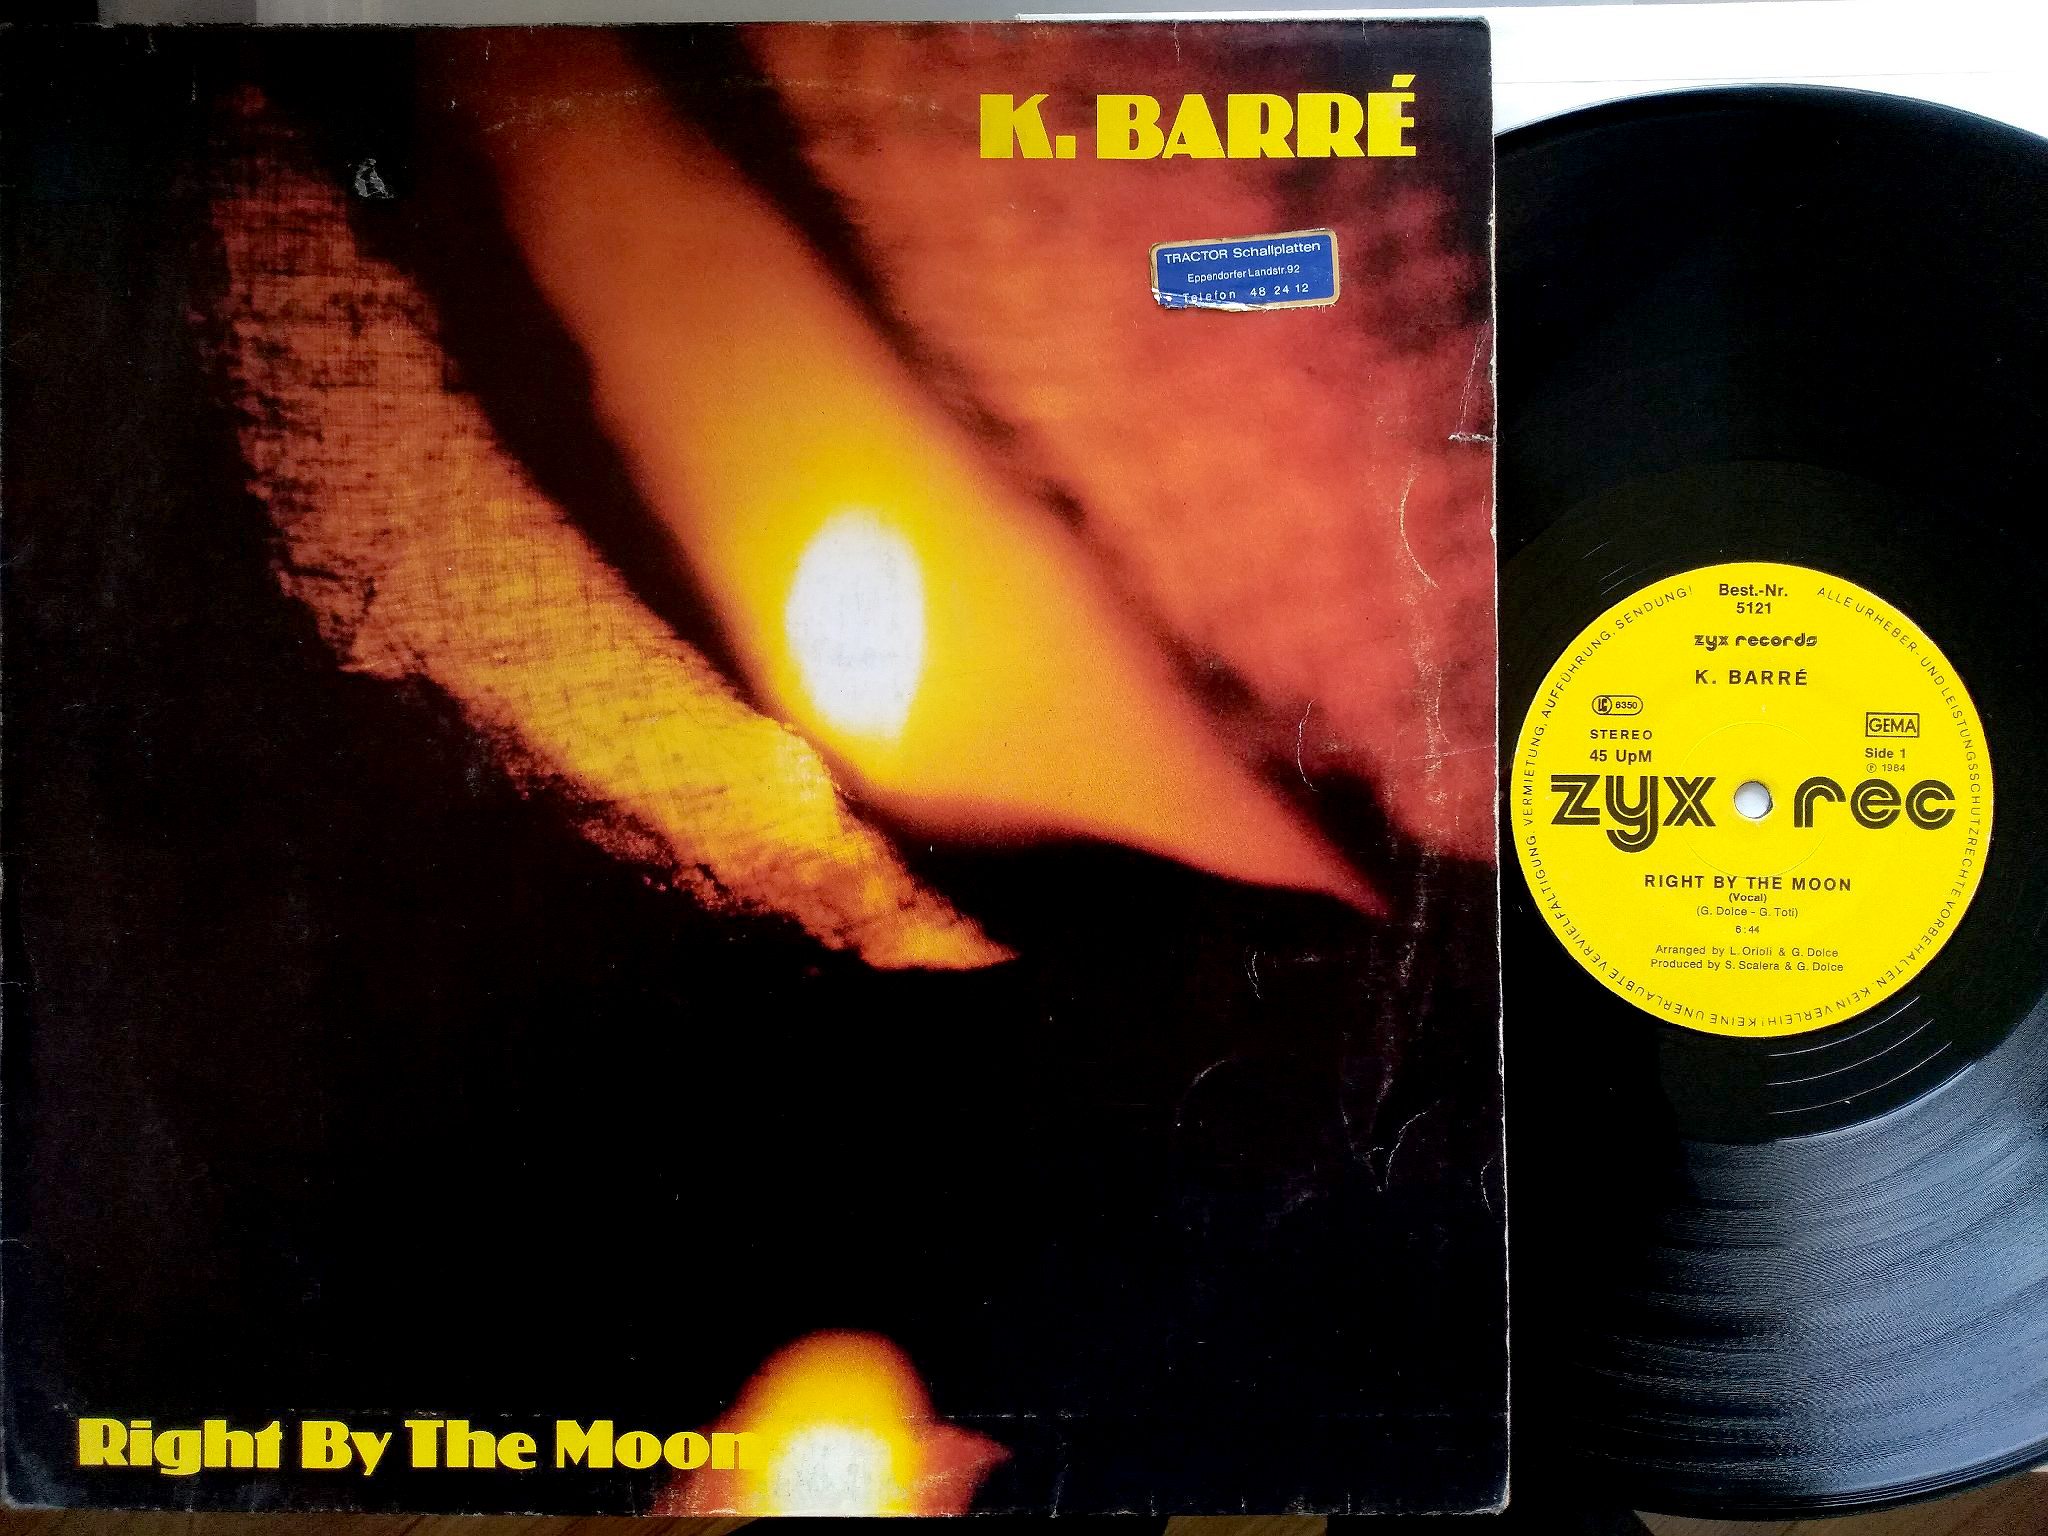 K. Barré - Right By The Moon